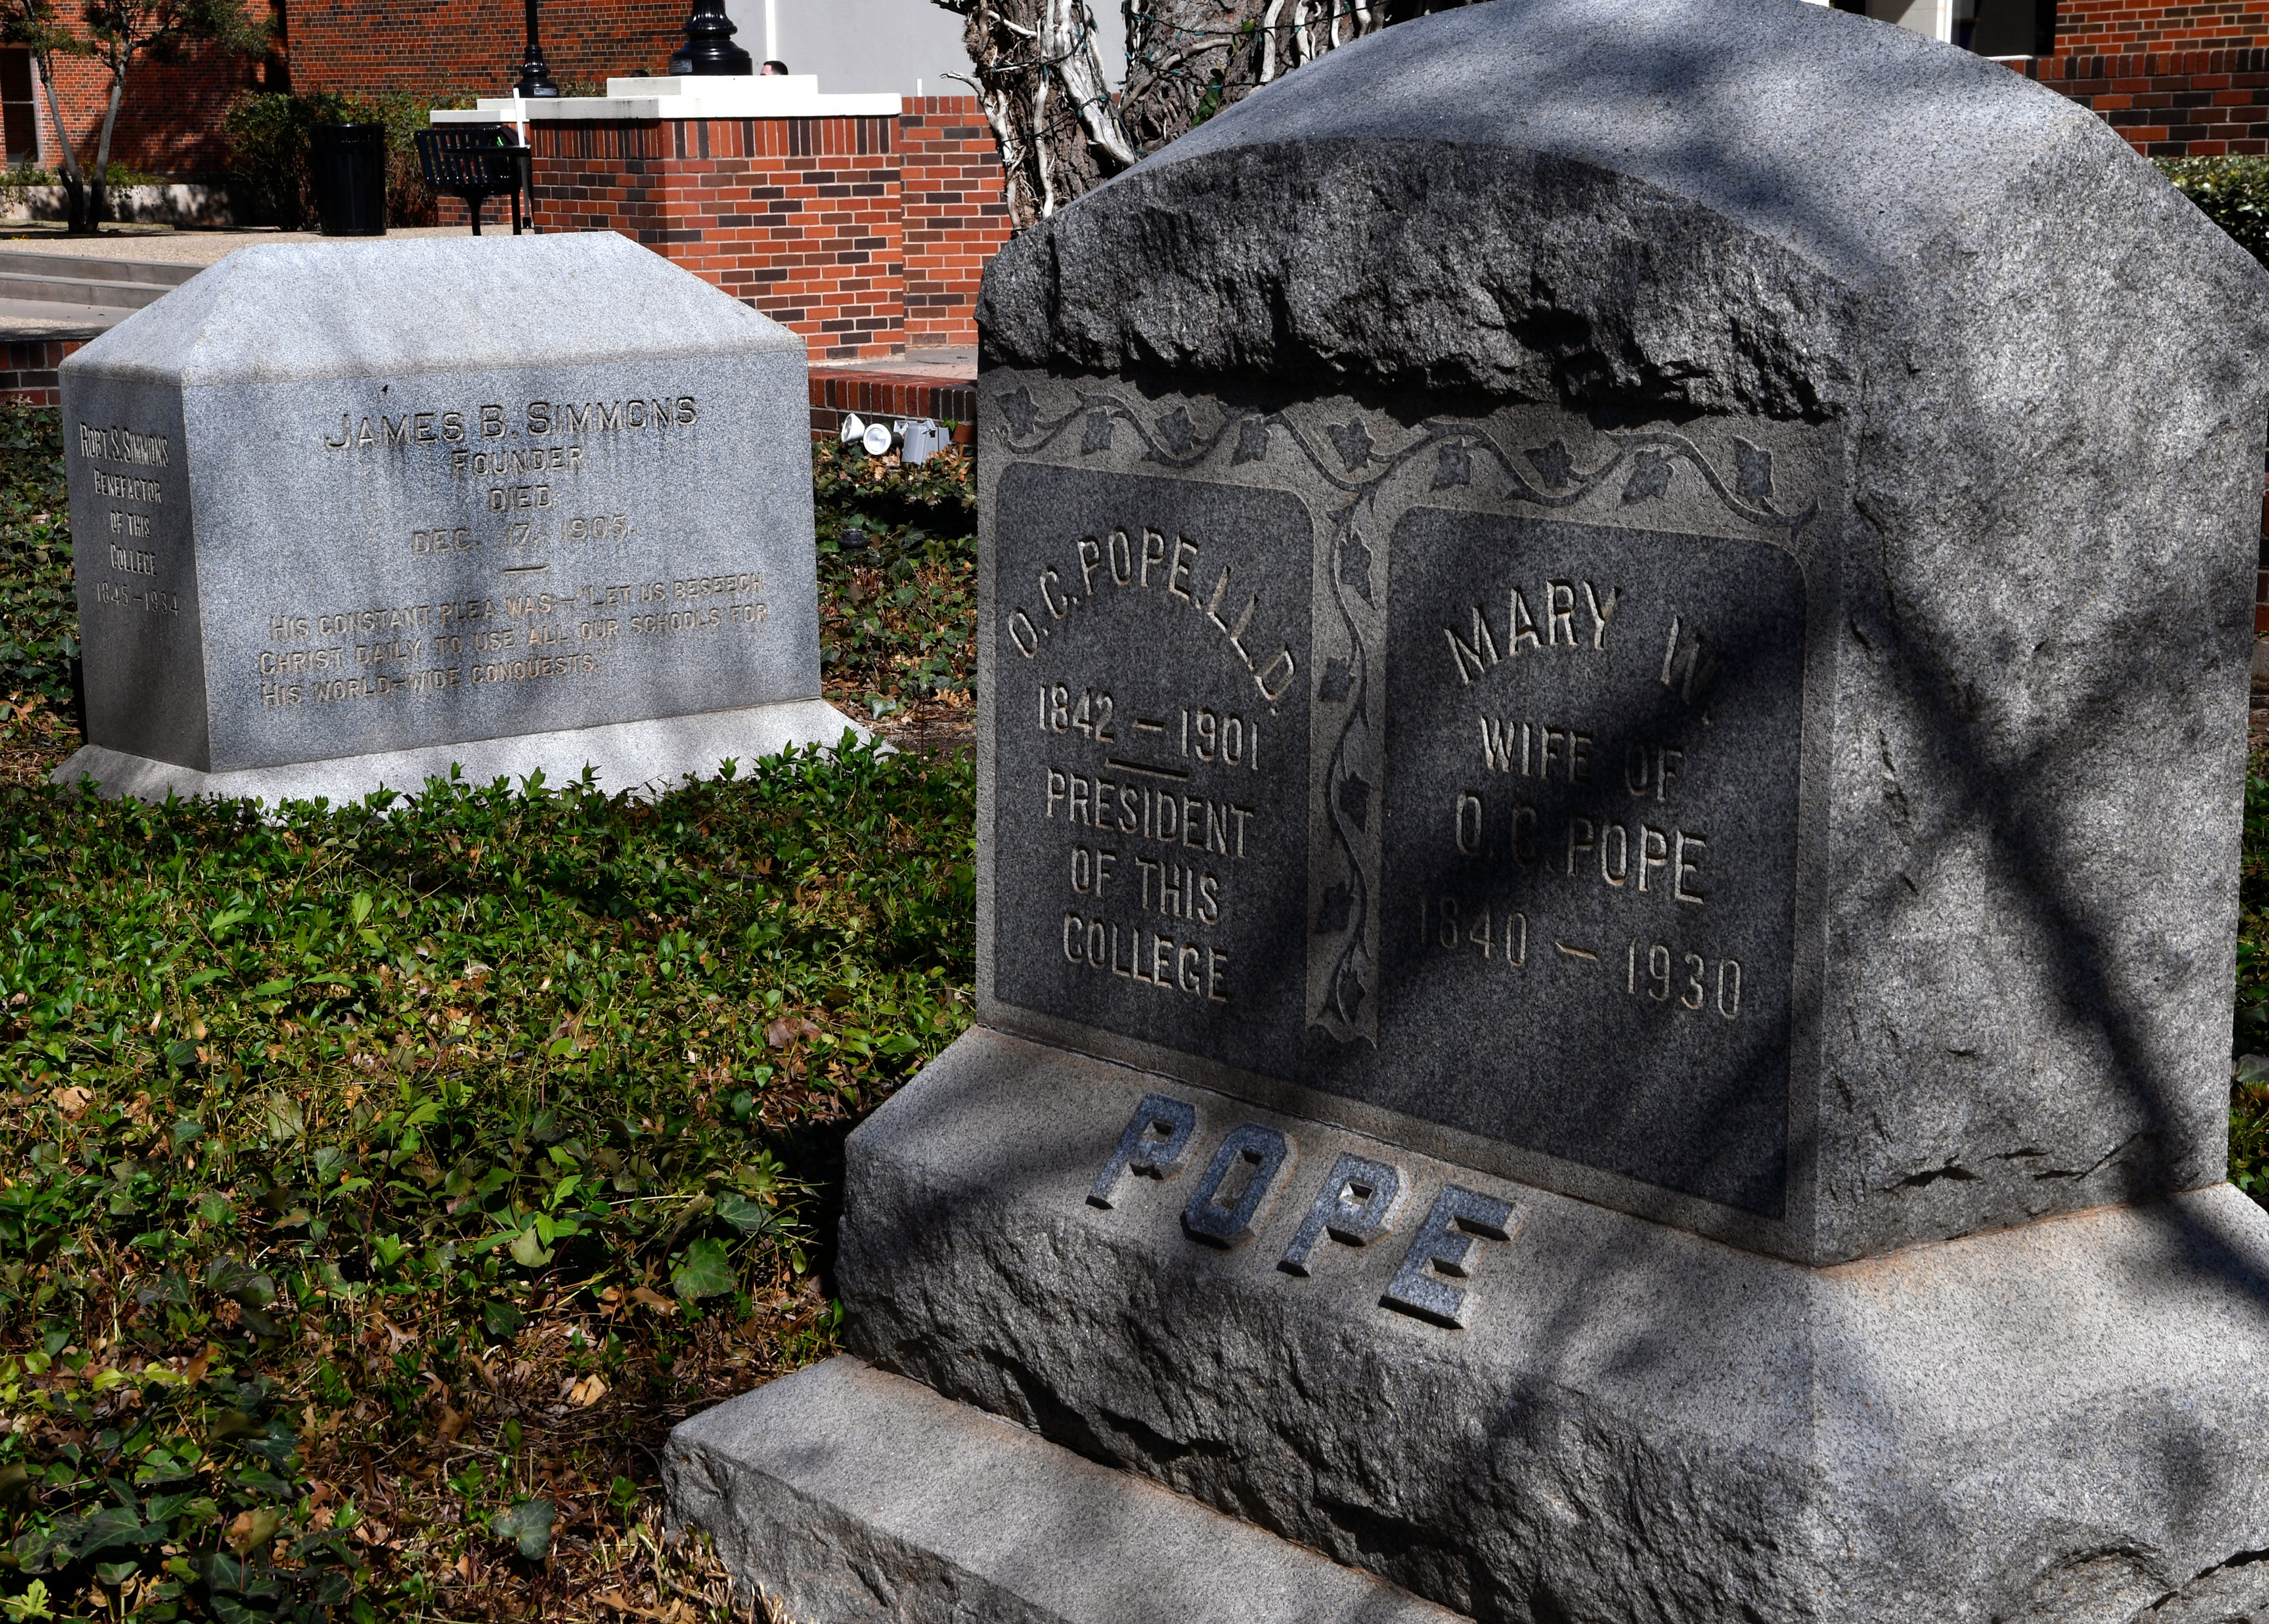 The grave markers of Hardin-Simmons University founders James B. Simmons and O.C. Pope at HSU.